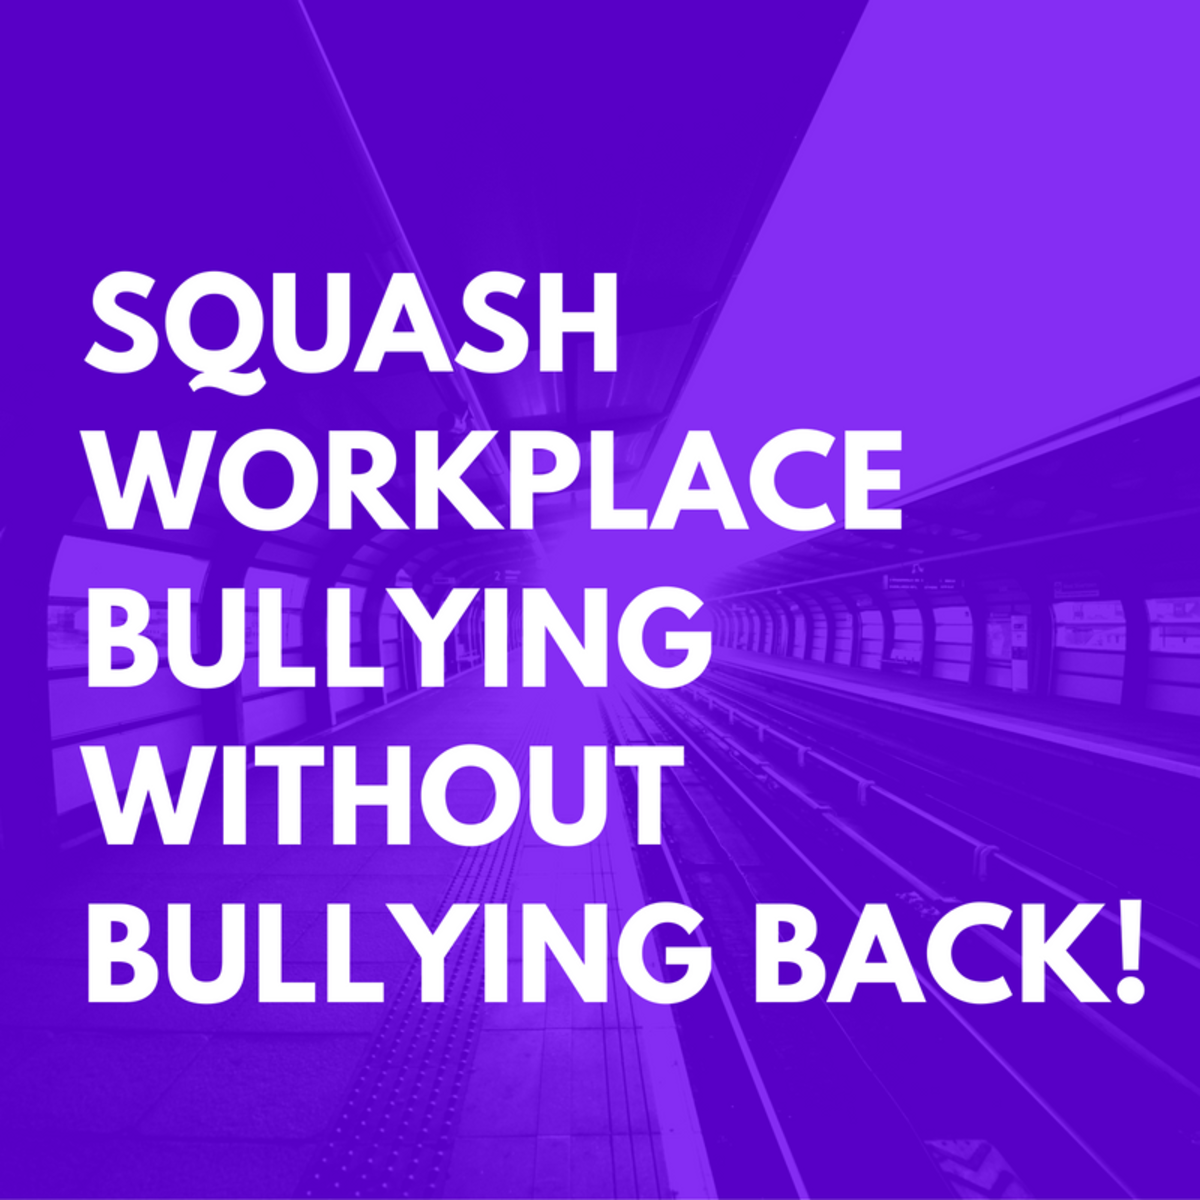 Avoid bullying without bullying back!